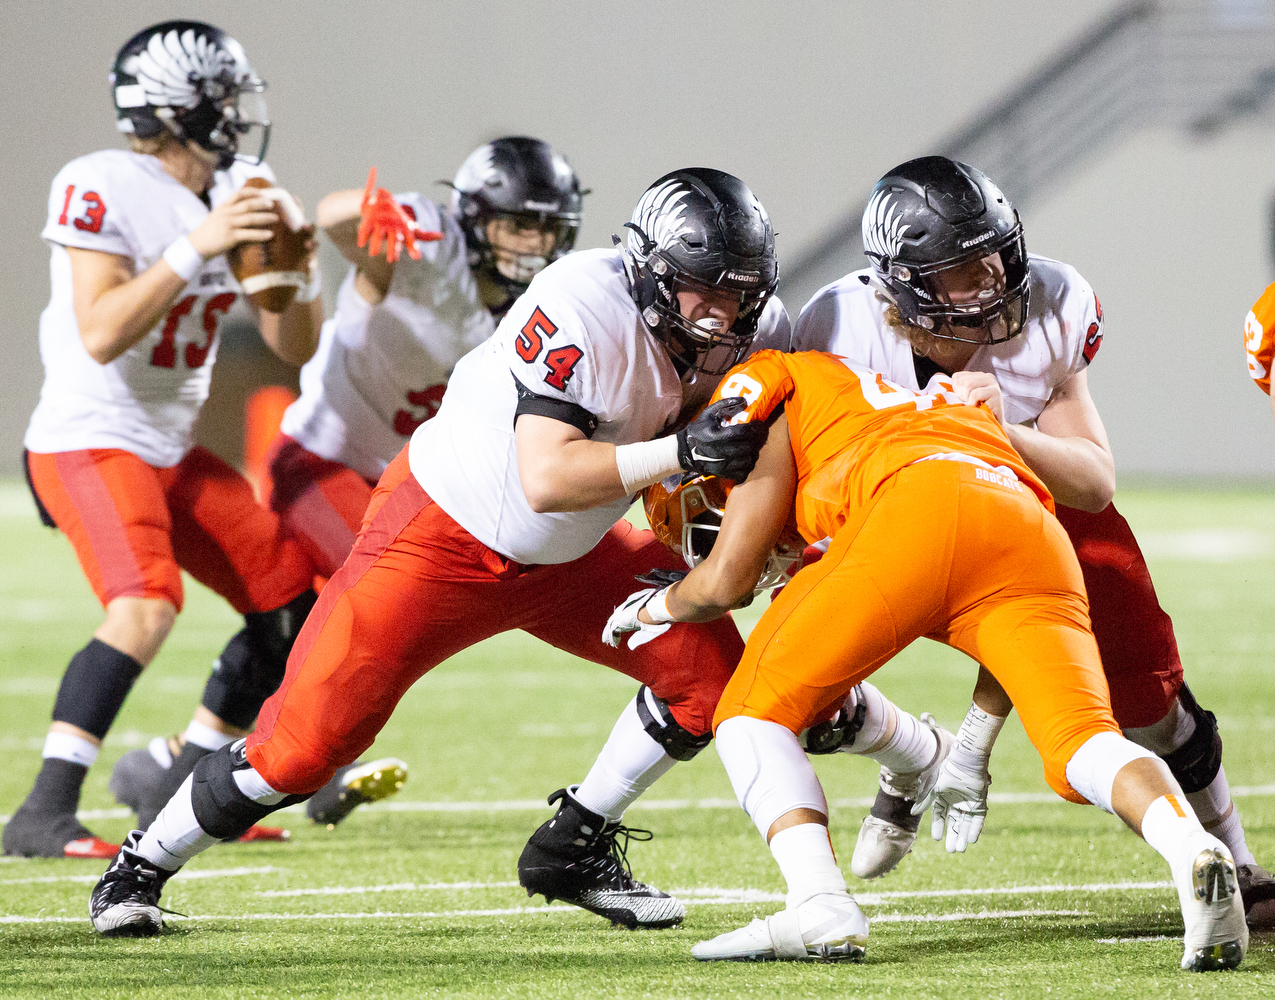 Eagles play Celina in Round 3 of the Playoffs at C.H. Collins in Denton, Texas, on November 23, 2018. (GiGi Robertson / The Talon News)